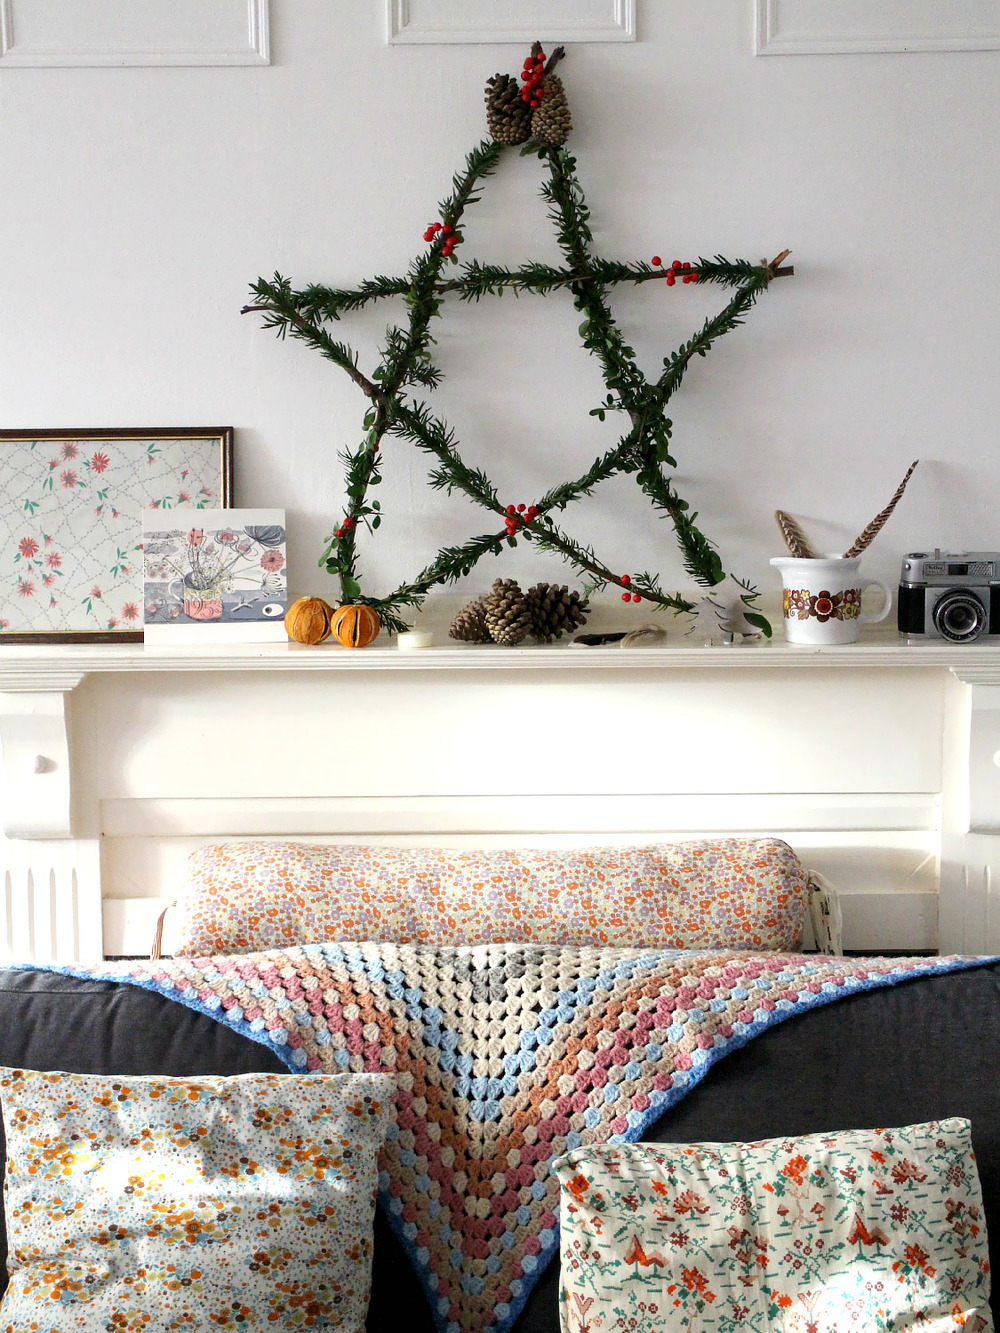 DIY Christmas rustic star by Owl and Accordion for Seeds and Stitches